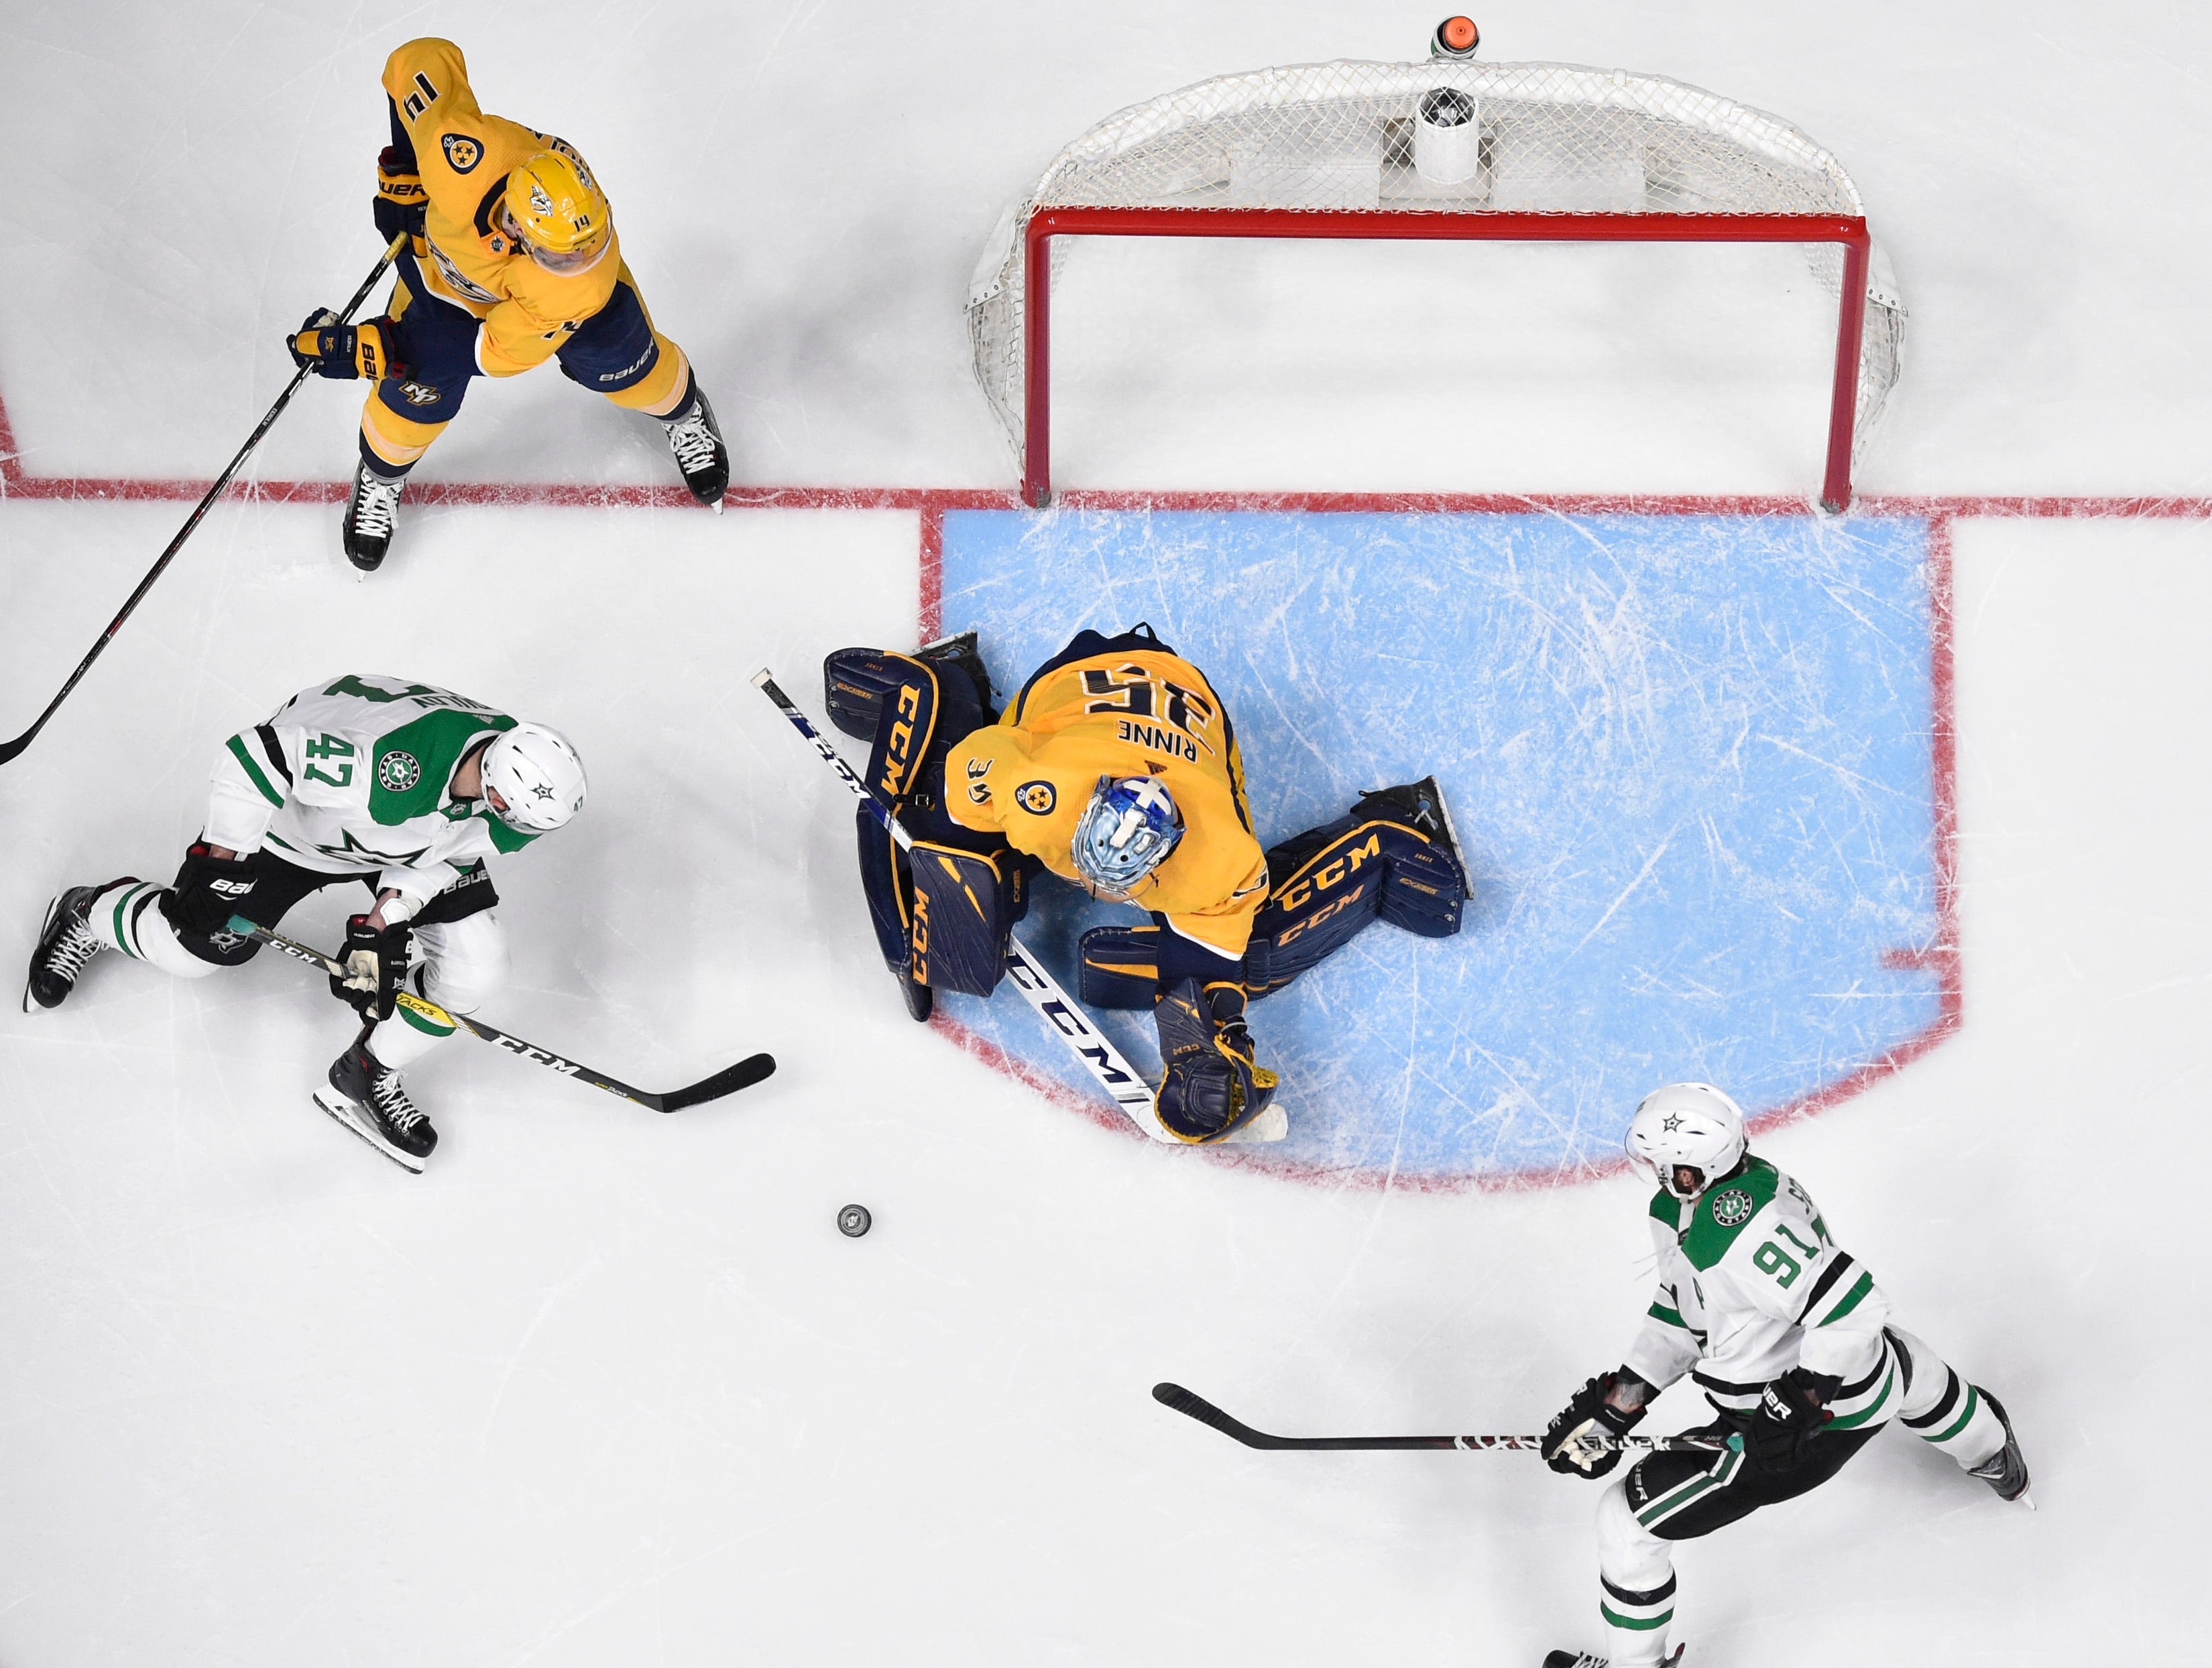 Nashville Predators goaltender Pekka Rinne (35) defends against Dallas Stars right wing Alexander Radulov (47) during the third period of the divisional semifinal game at Bridgestone Arena in Nashville, Tenn., Wednesday, April 10, 2019.